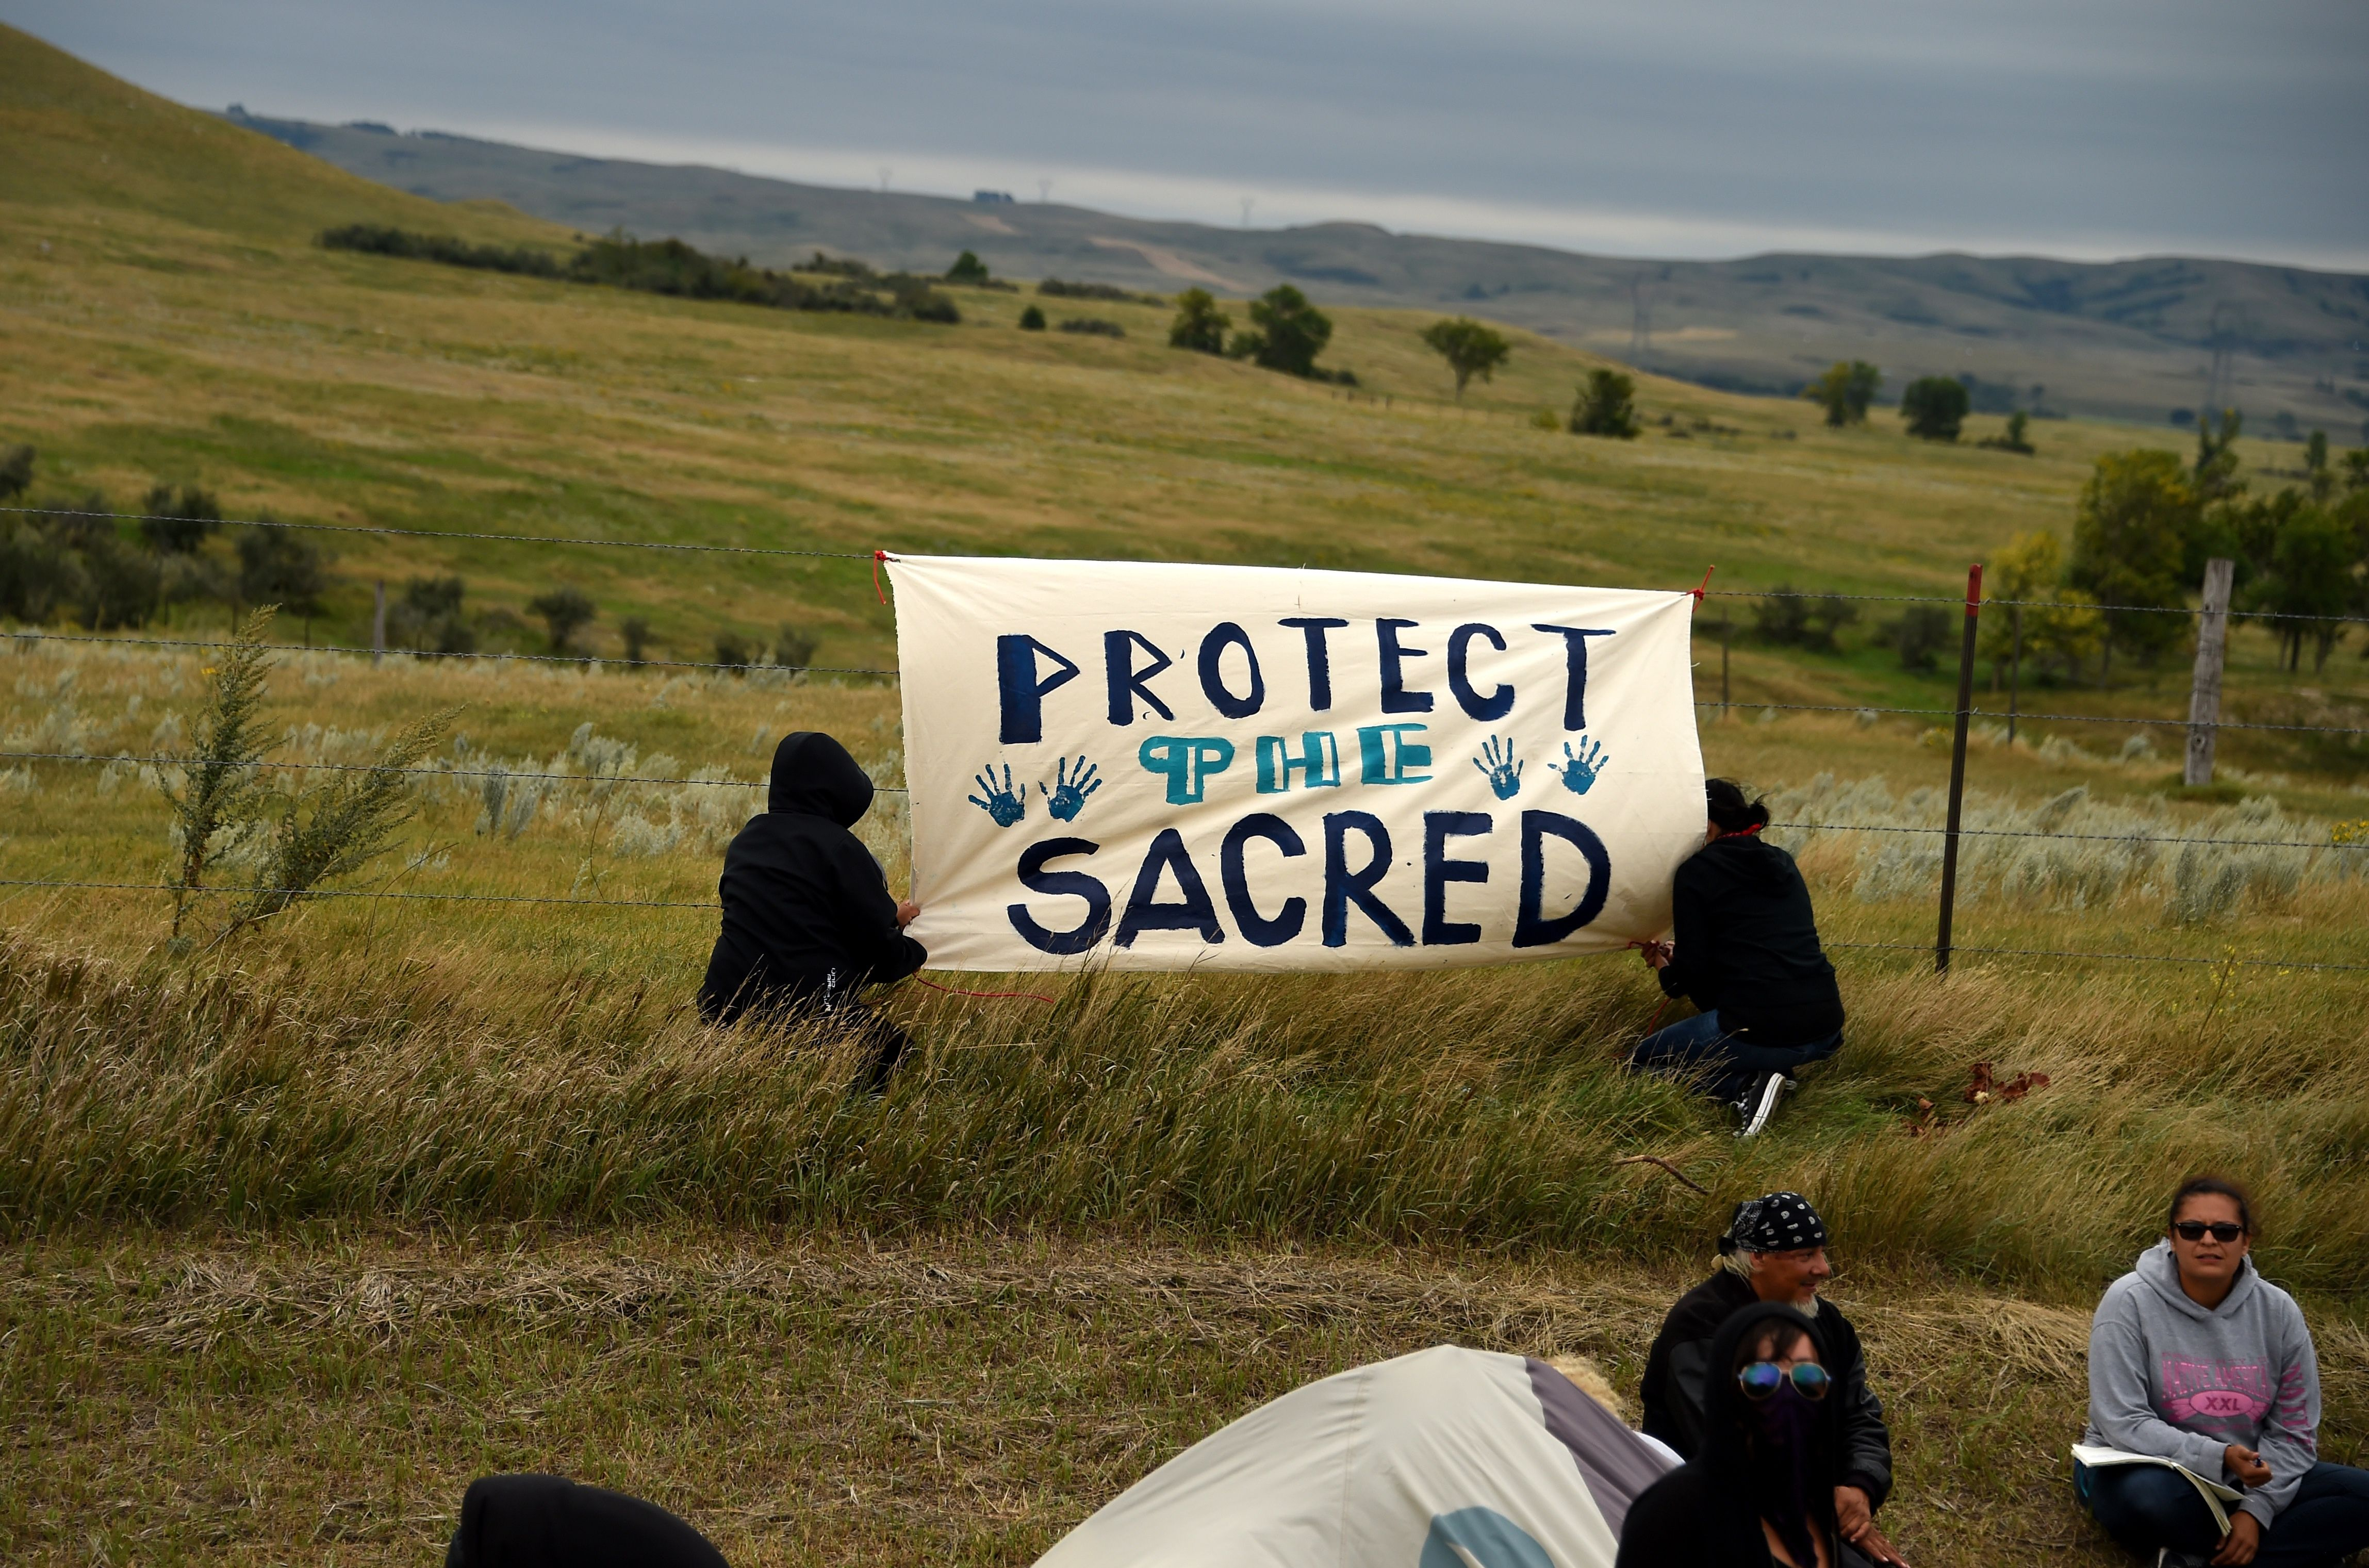 Demonstrators join the Standing Rock Sioux Tribe's protest of the oil pipeline that is slated to cross the Missouri River nearby, Sept. 4, 2016 near Cannon Ball, North Dakota.